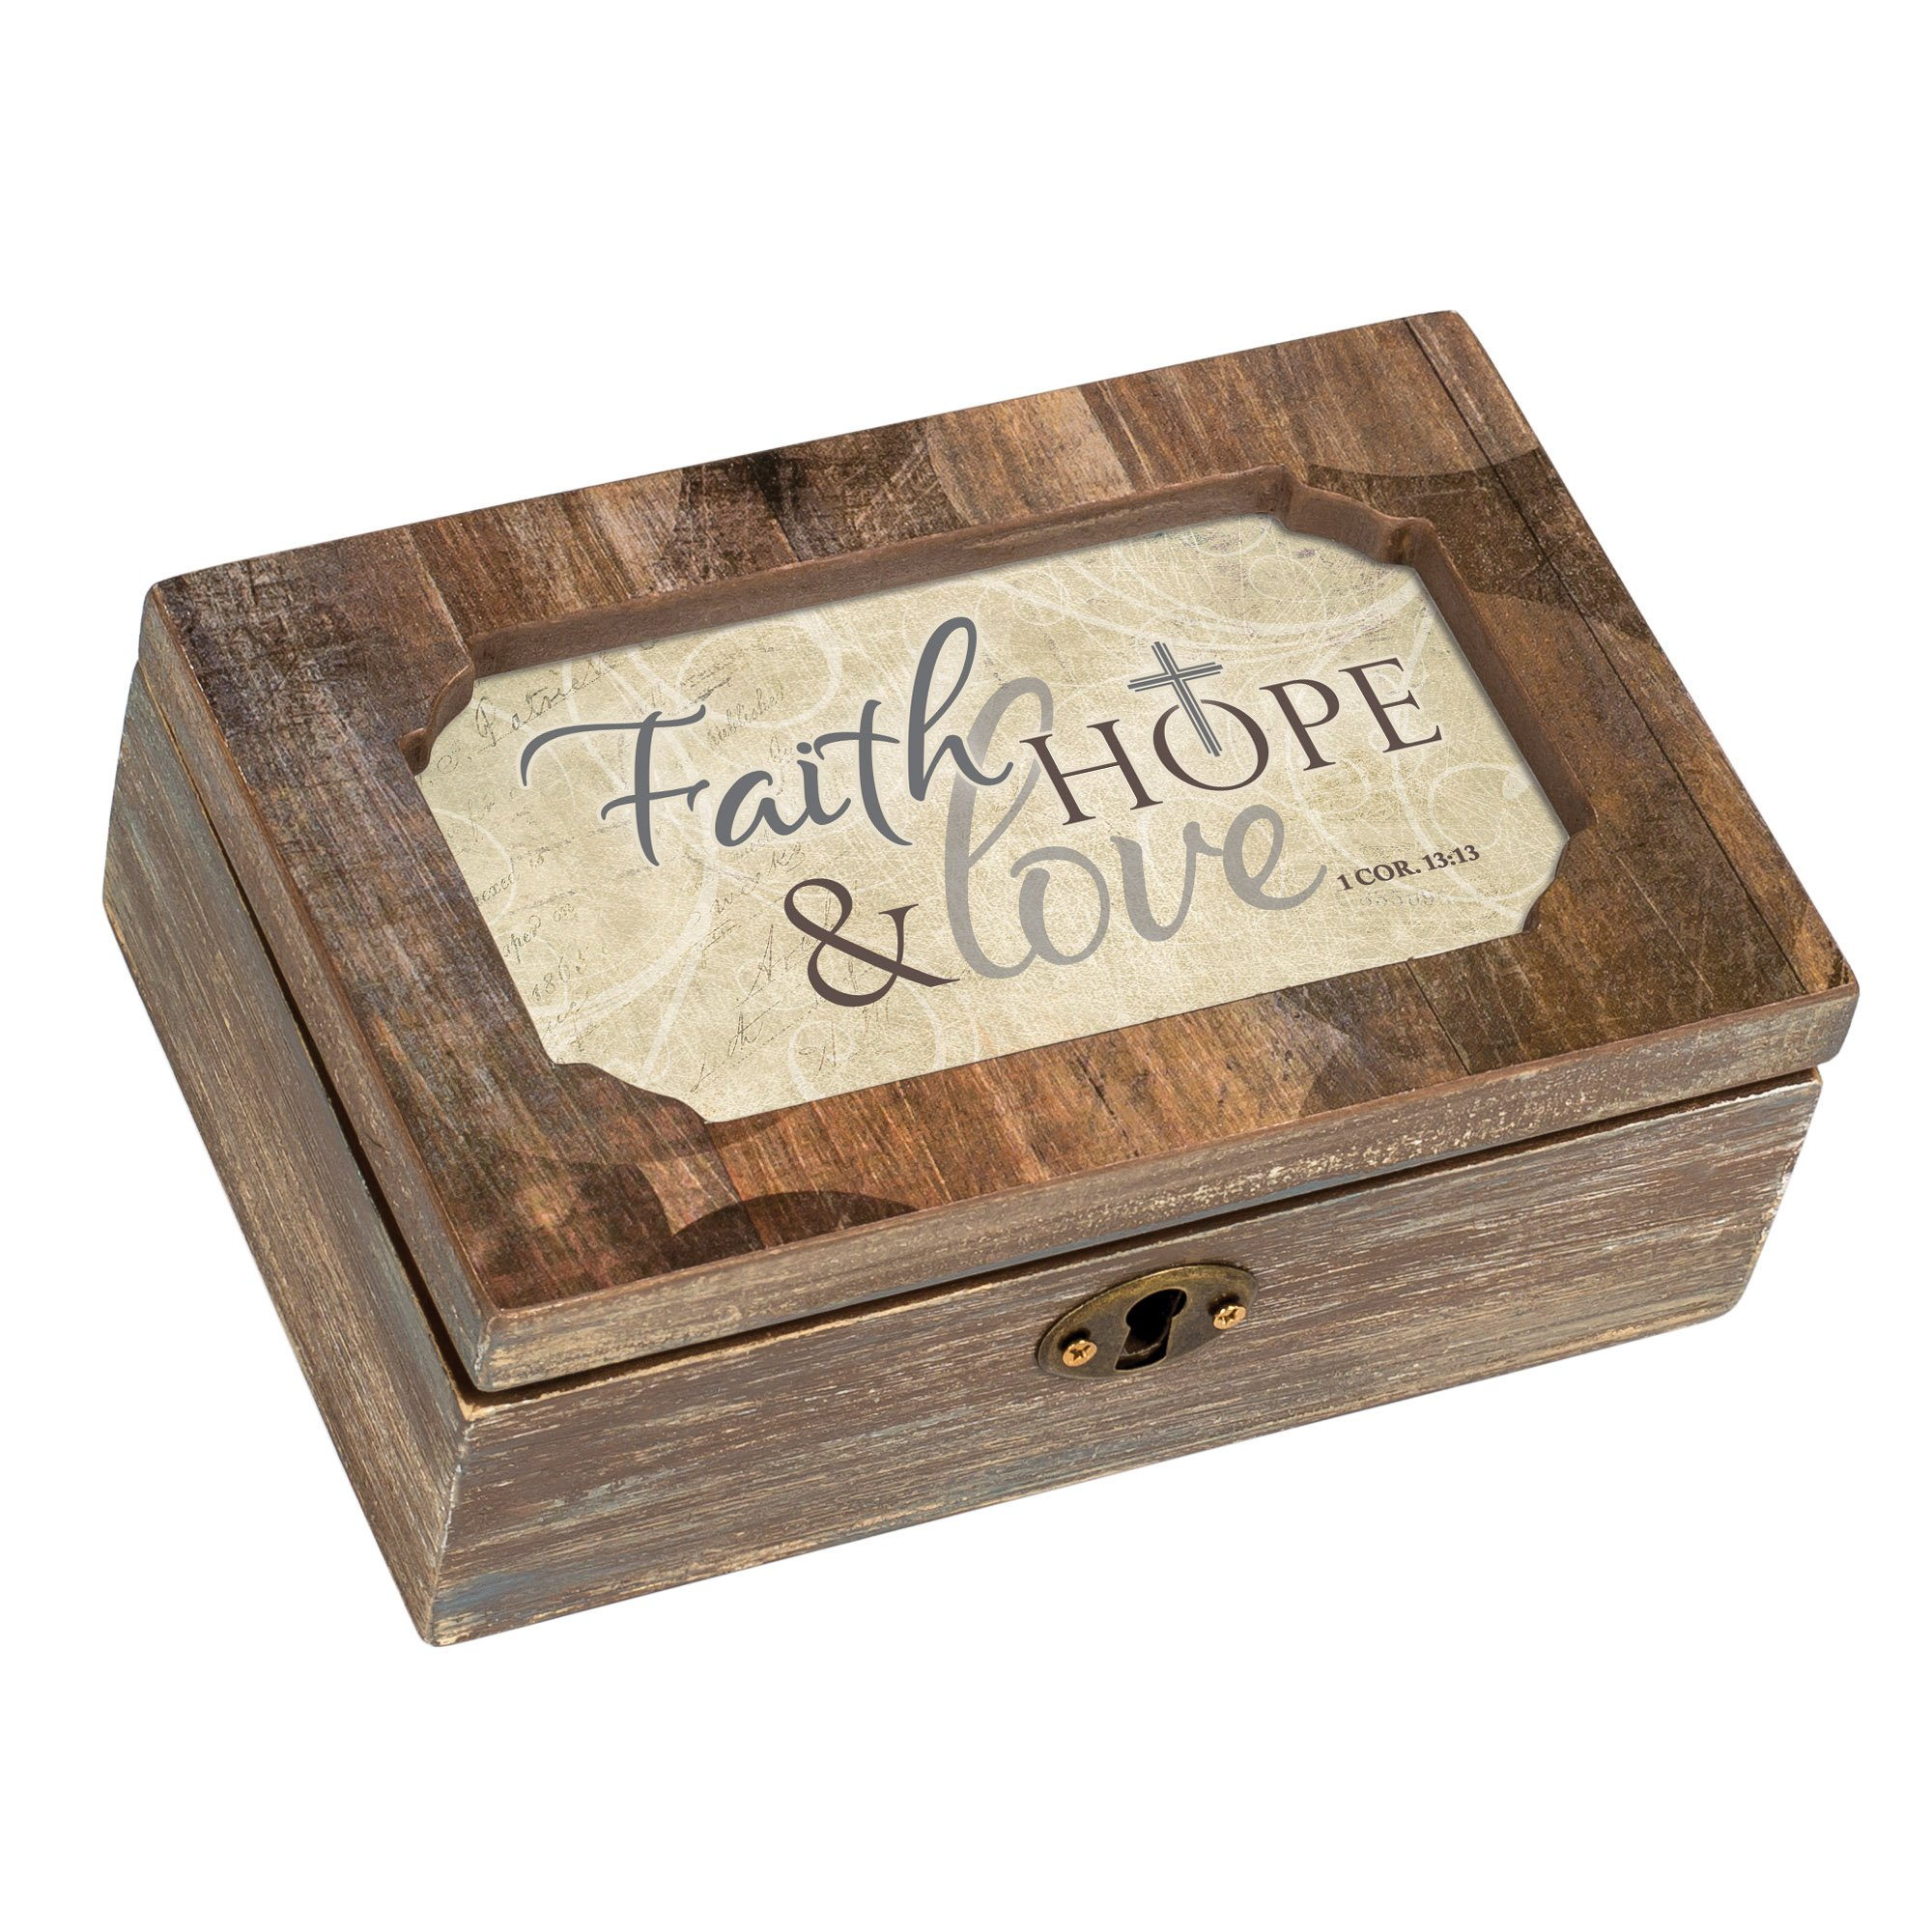 Cottage Garden Faith Hope Love Woodgrain Decoupage Petite Music Box Plays That's What Friends are for